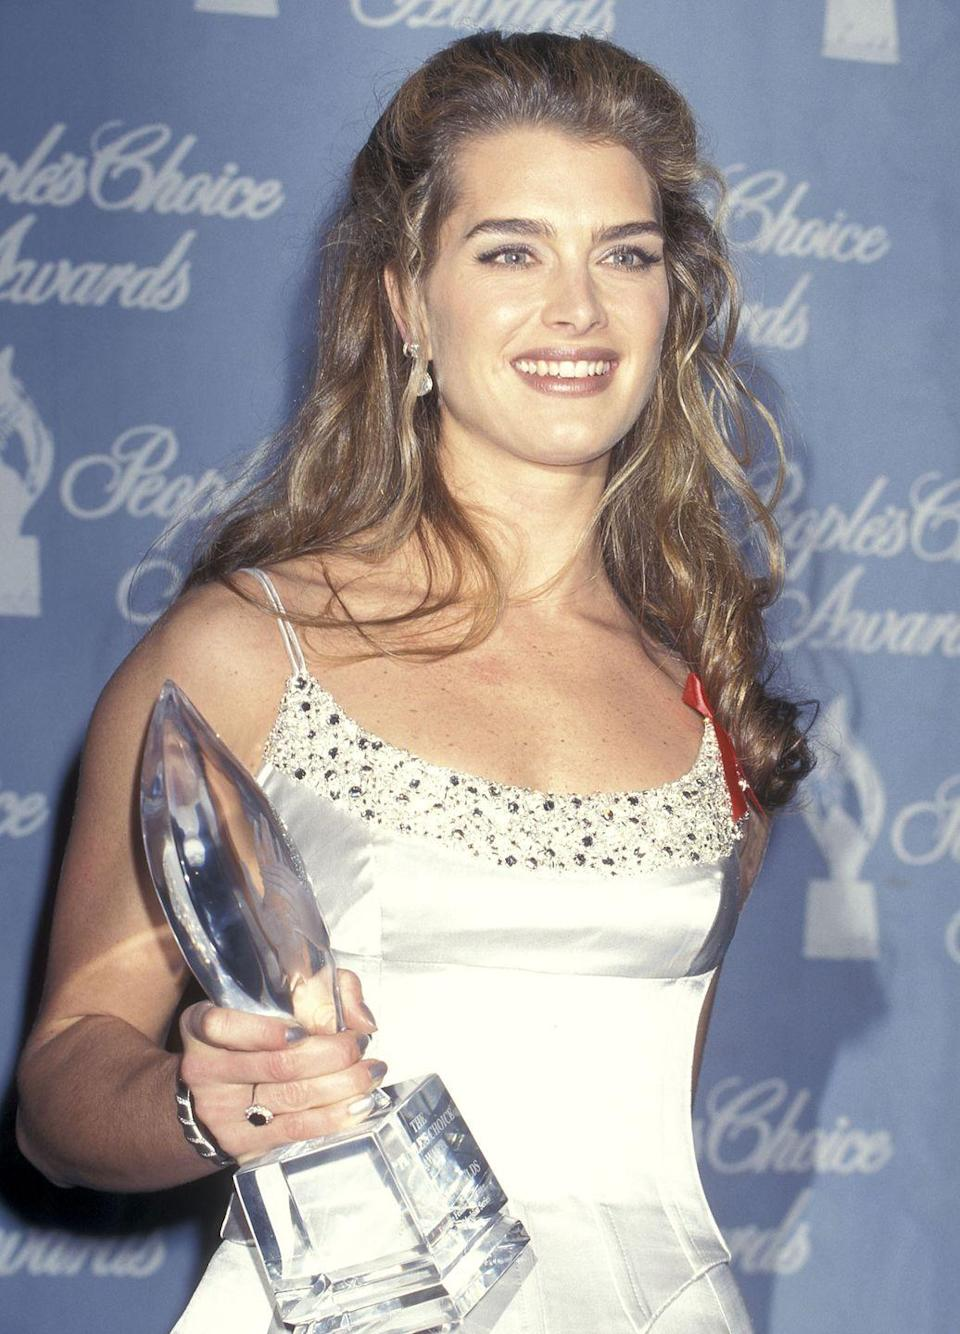 <p>Her role in <em>Friends</em> led to a much bigger one: her leading role as Susan Kane in <em>Suddenly Susan</em>. The role garnered a lot of attention for Brooke, and she starred in the show until 2000. It also earned her a People's Choice Award for Favorite Female Performer in 1997. </p>